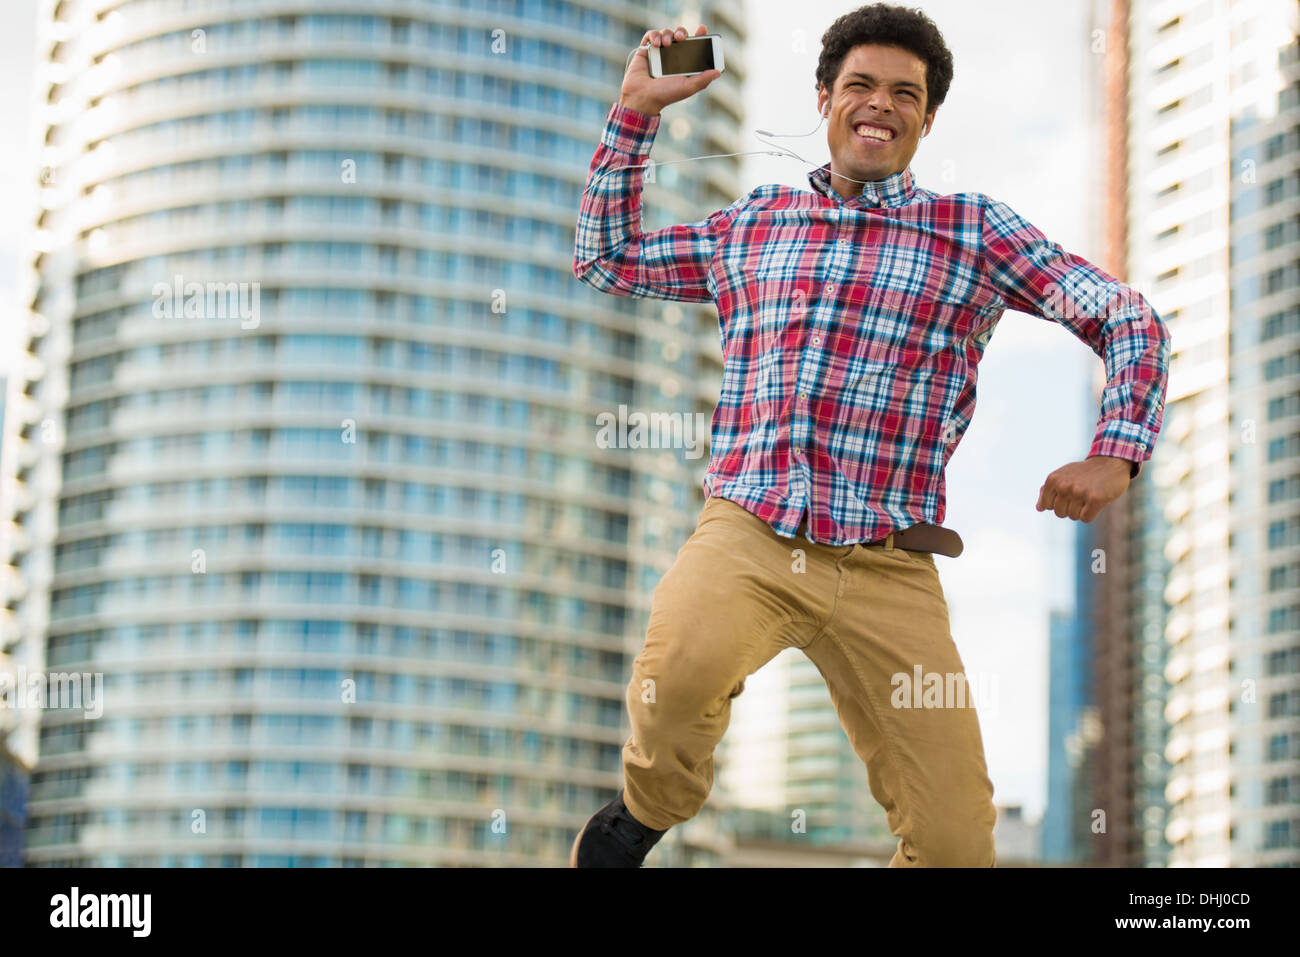 Man with mobile phone jumping for joy - Stock Image